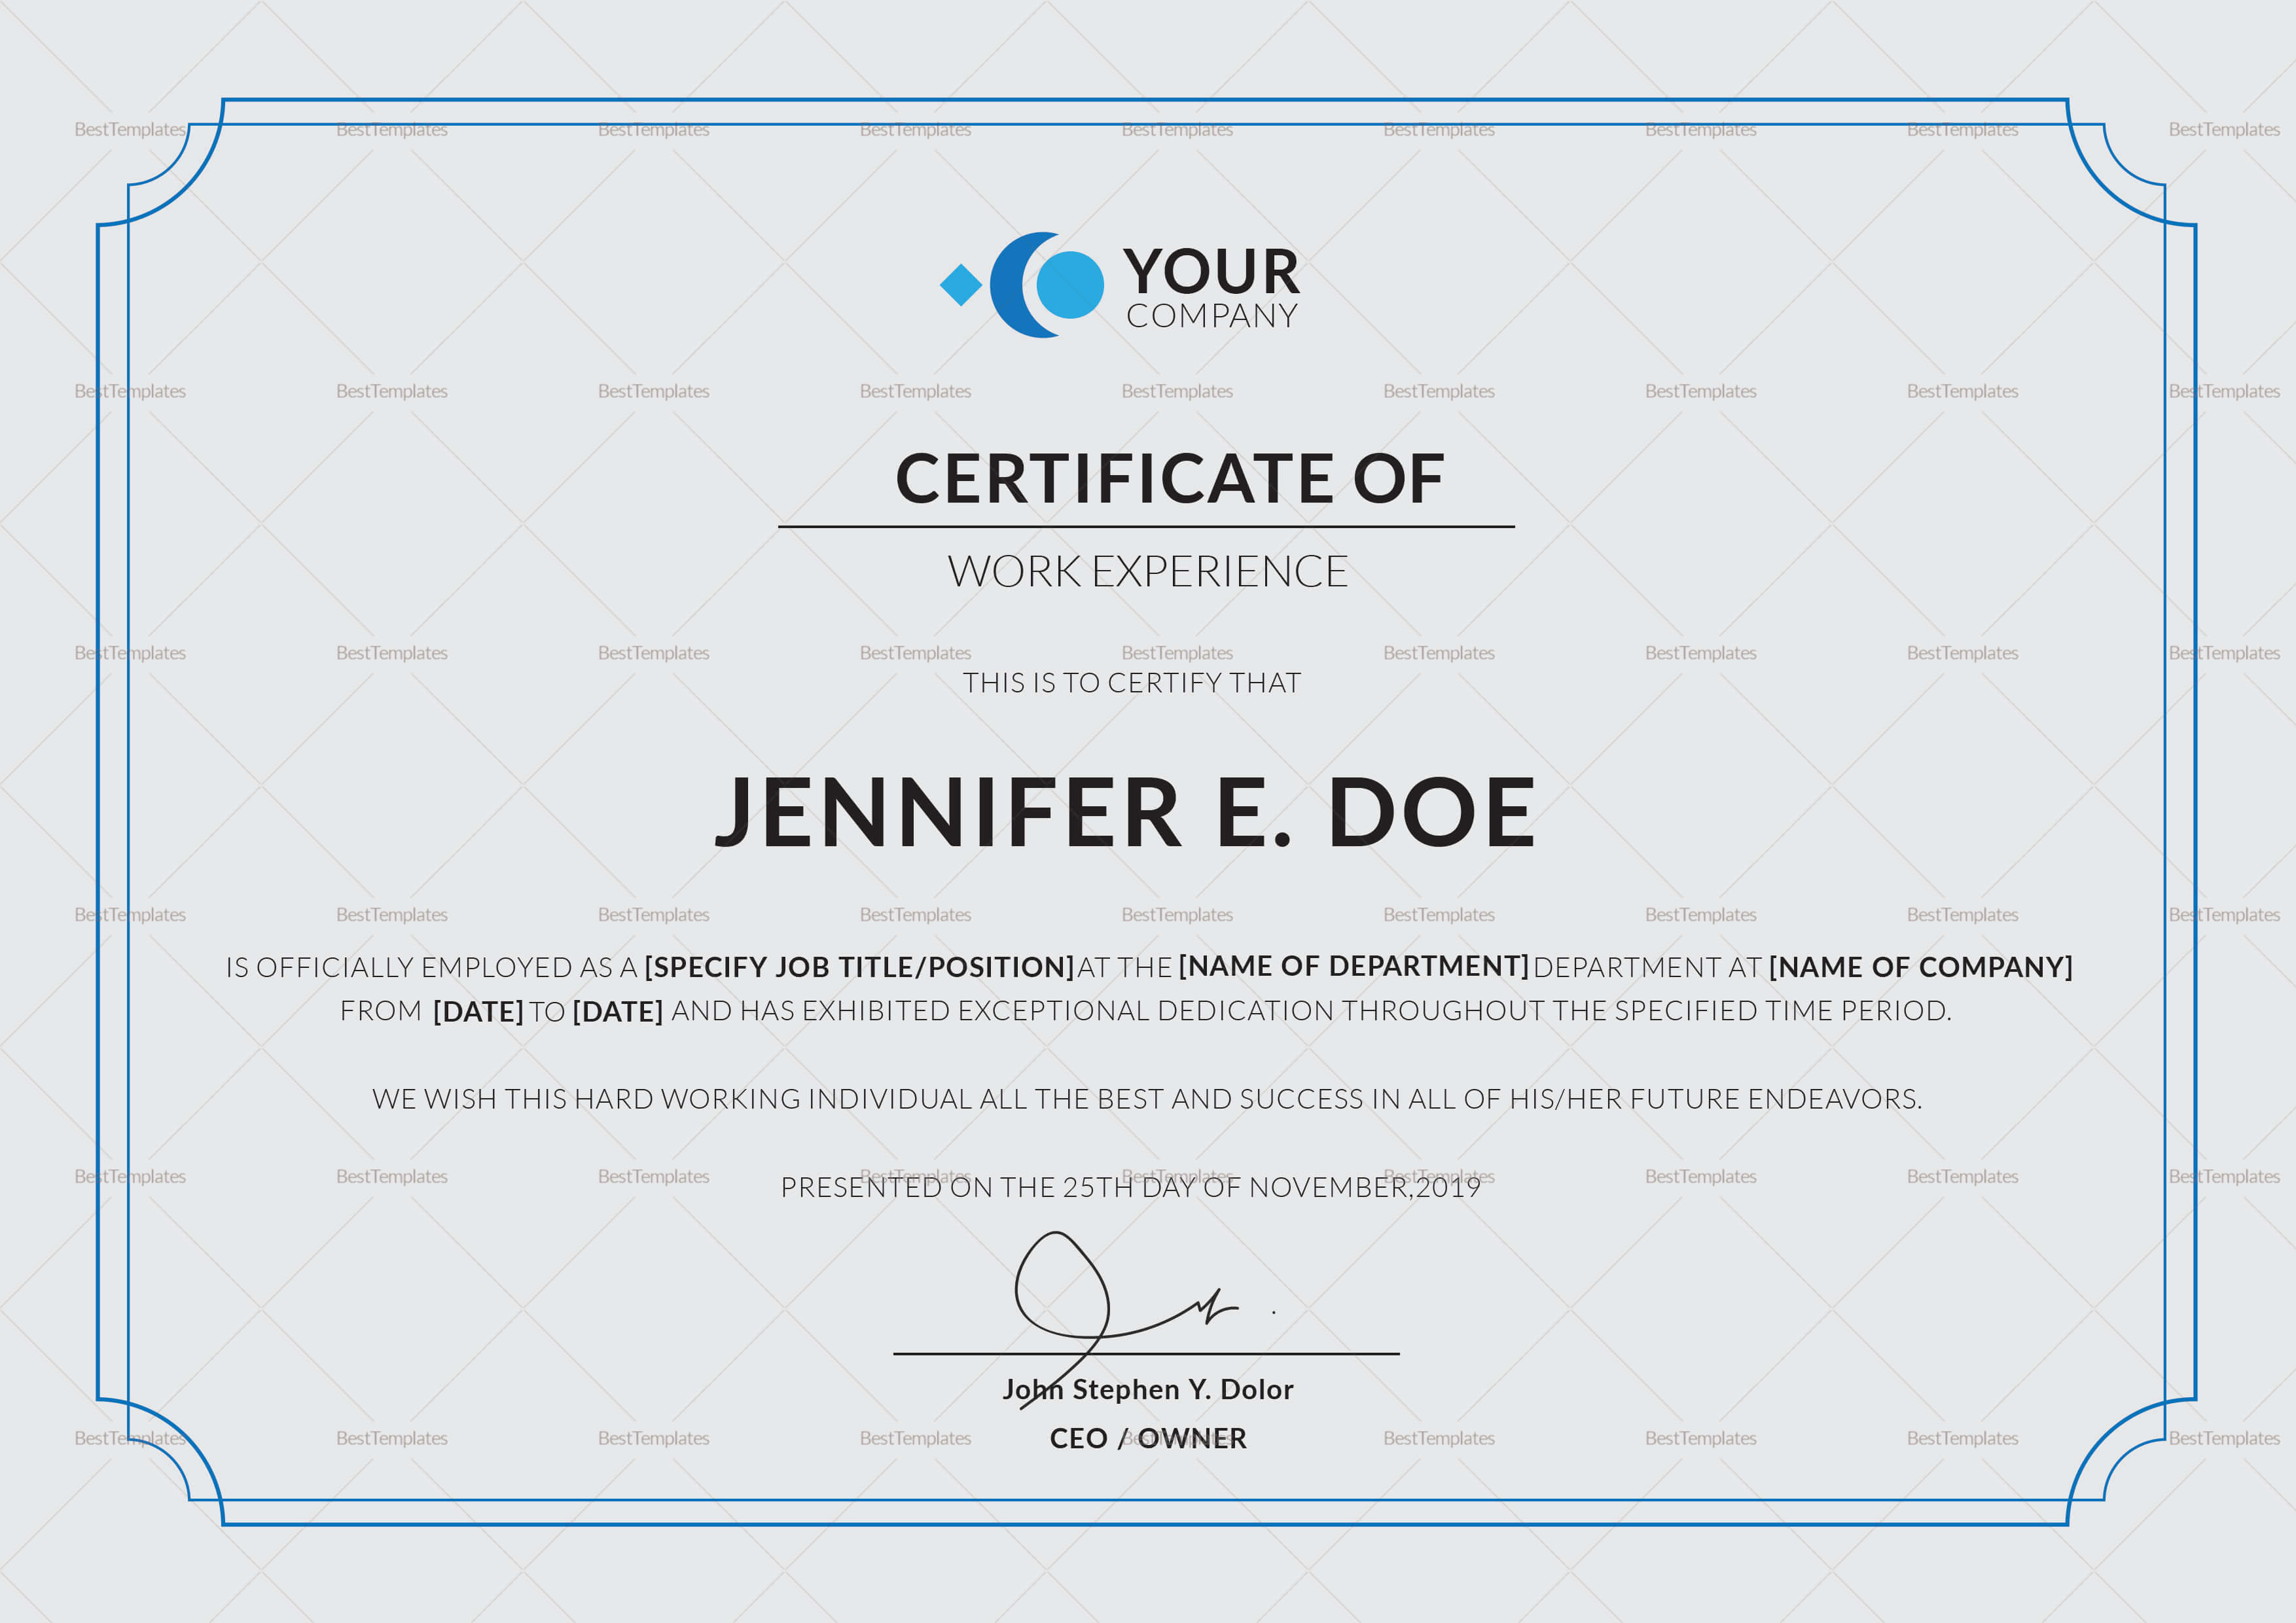 Work Experience Certificate Template In Certificate Of Experience Template